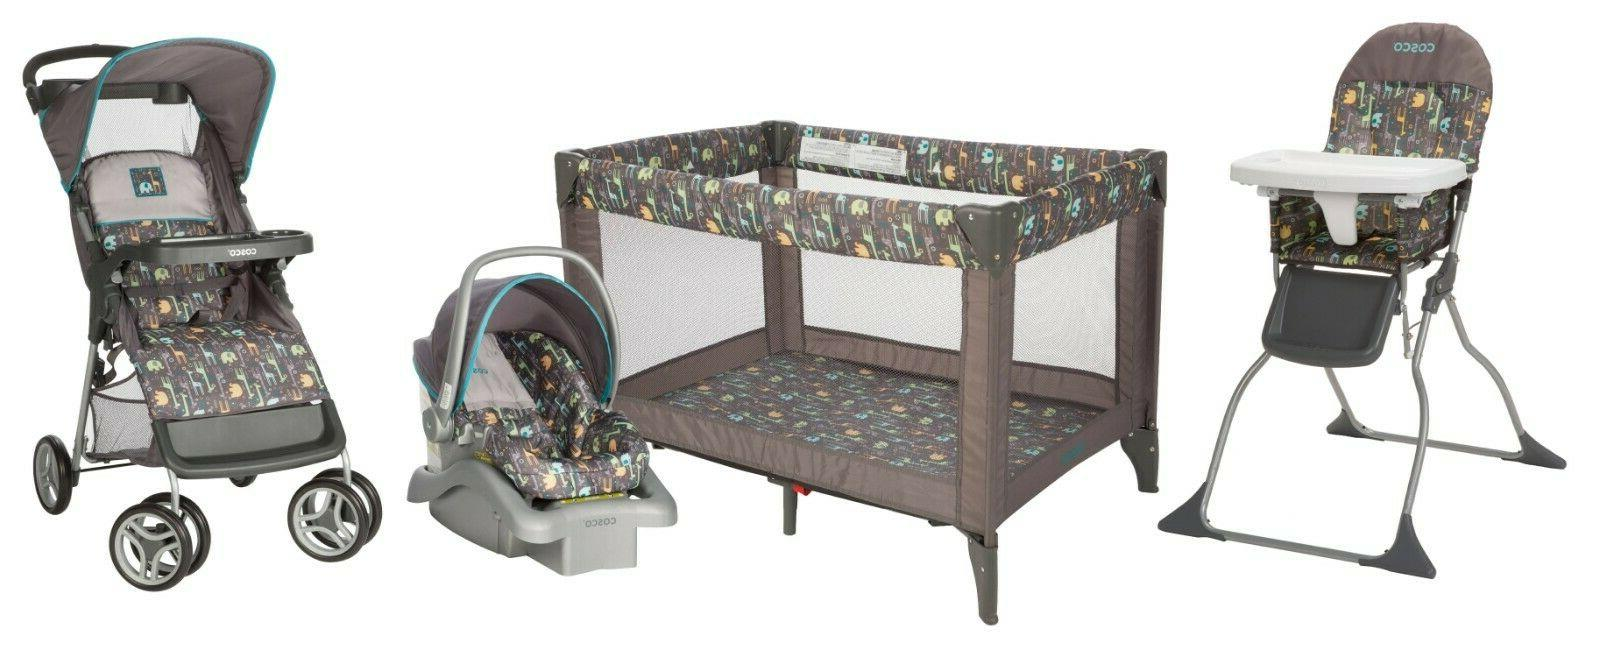 Cosco Baby Toddler Kids Safety Fence